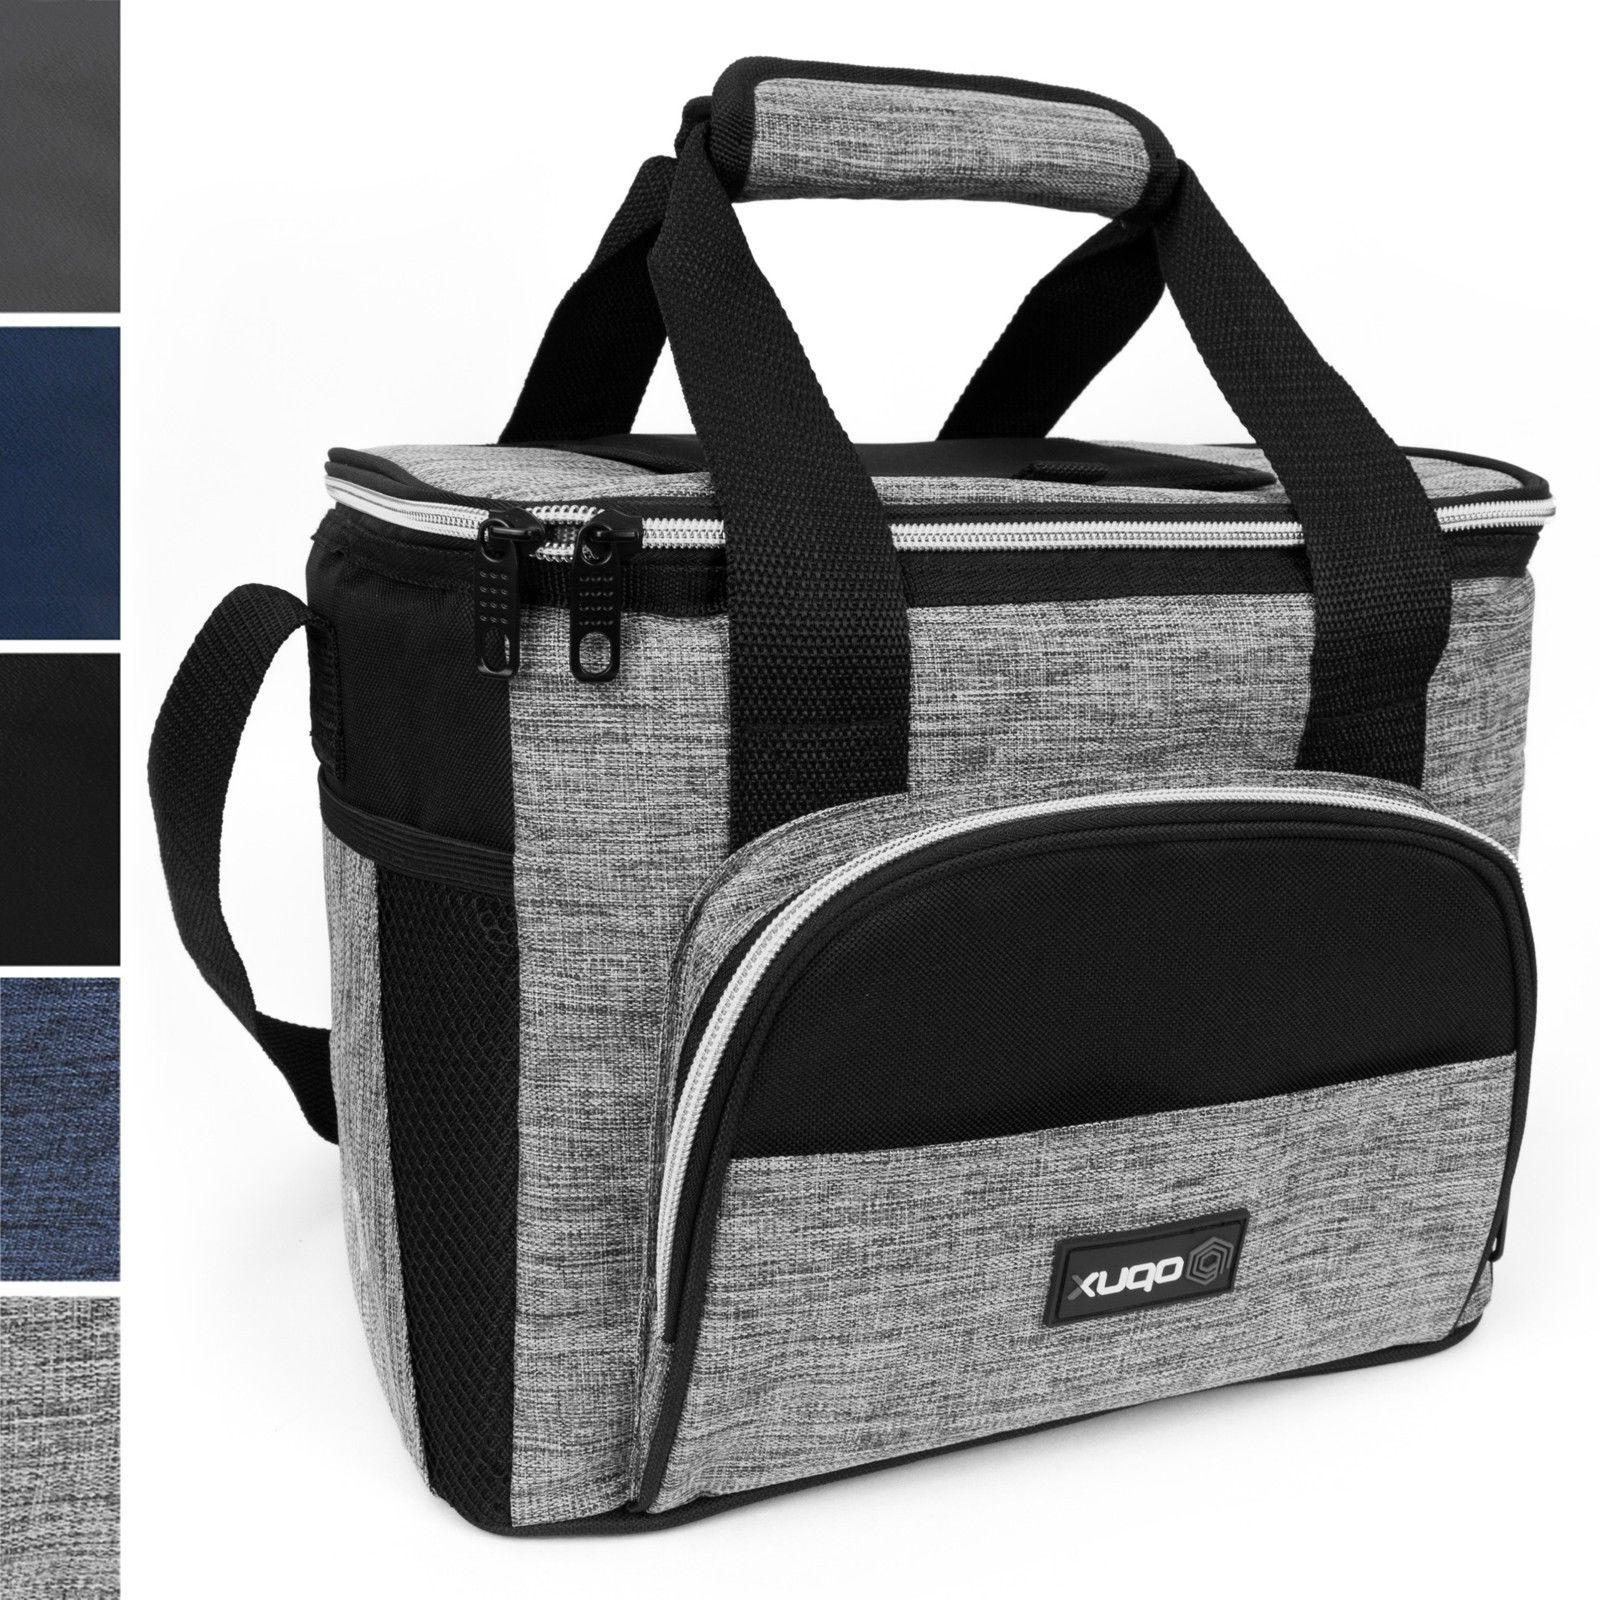 Large Insulated Lunch Bag For Travel Leakproof